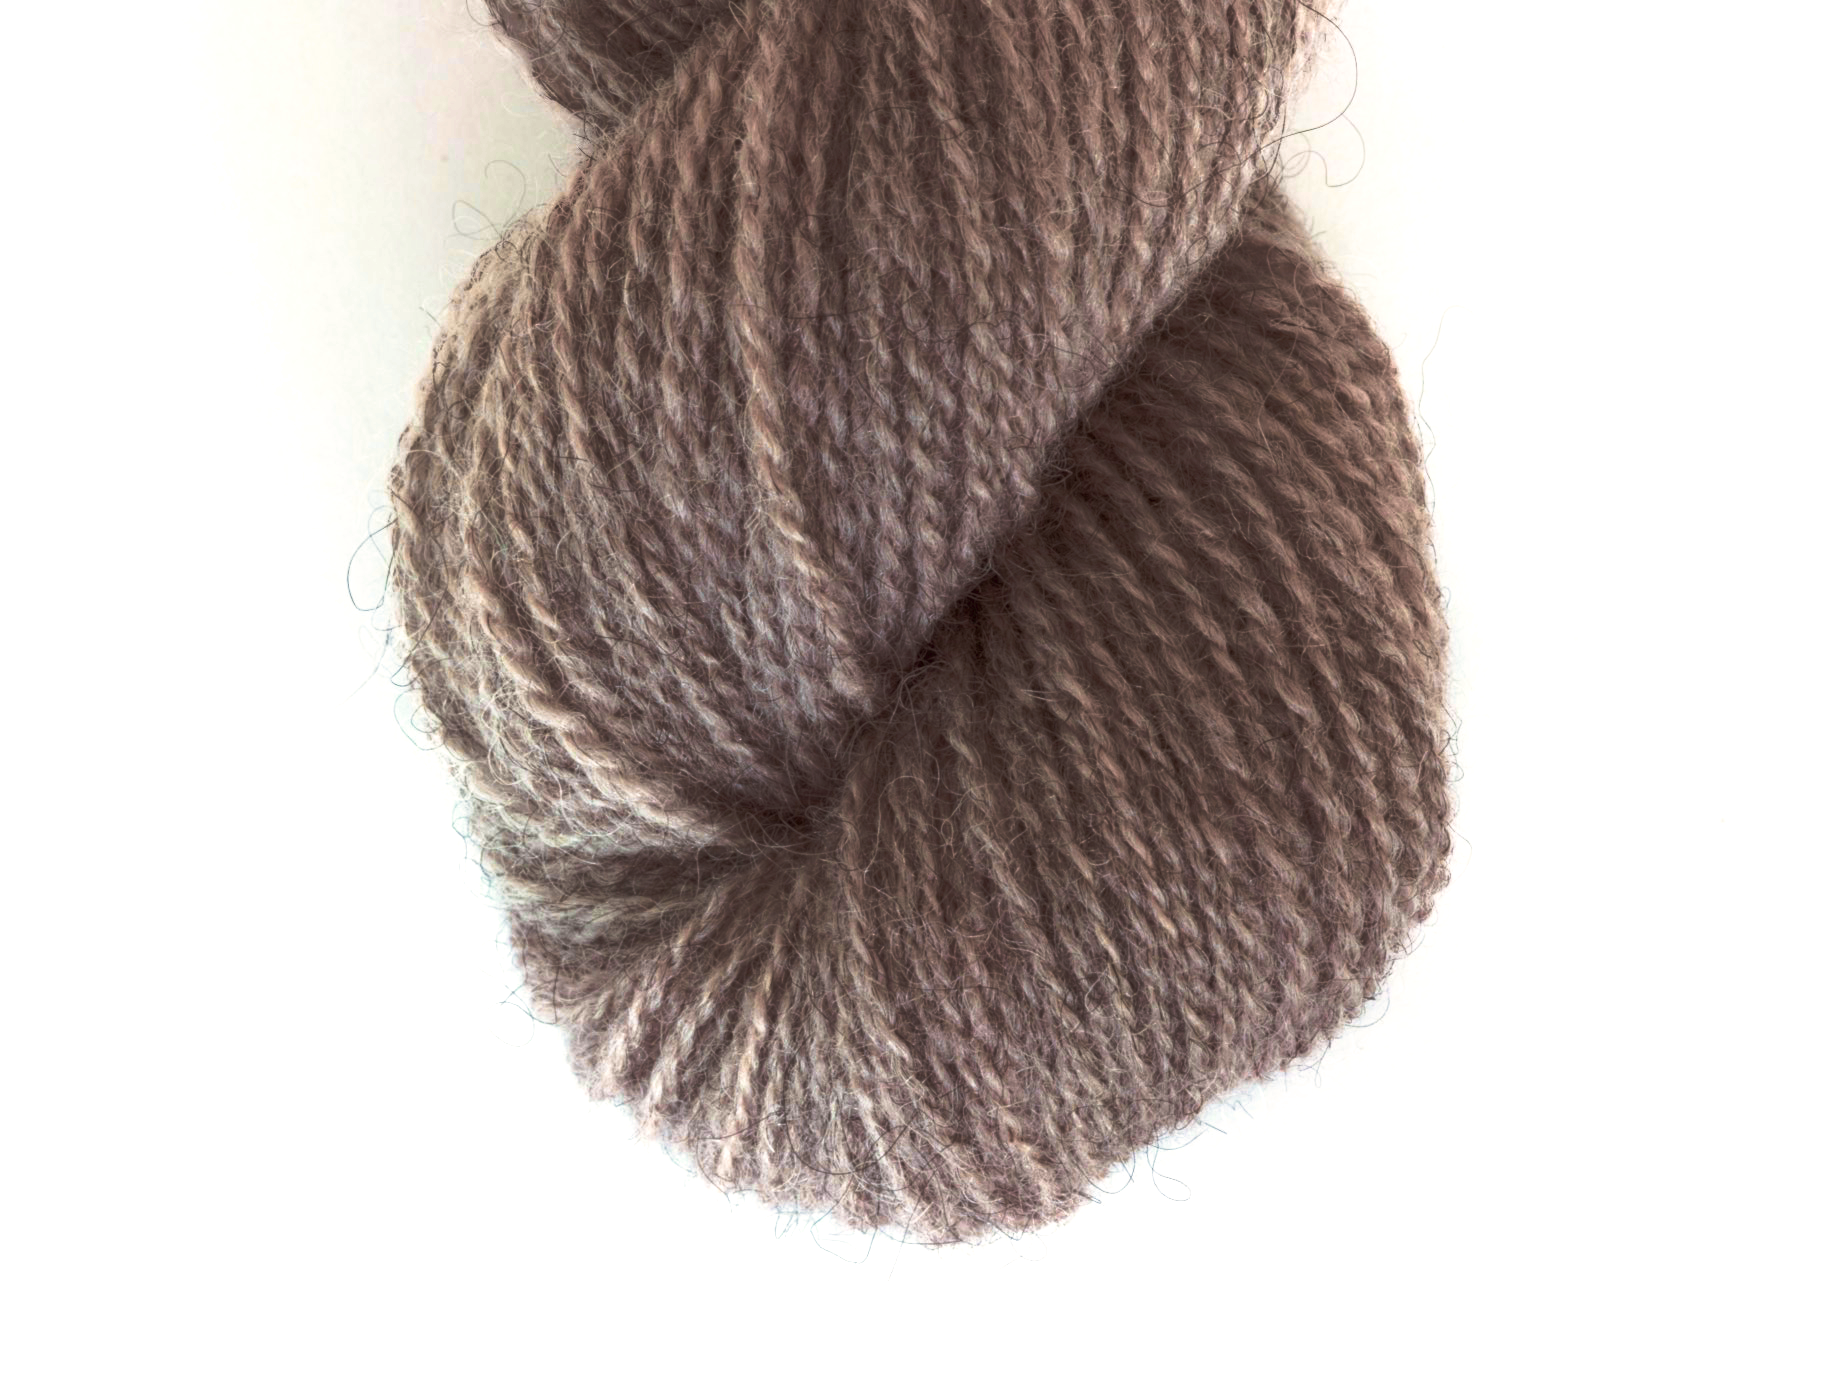 Bohus Stickning garn yarn BS 115 wool gray-brown